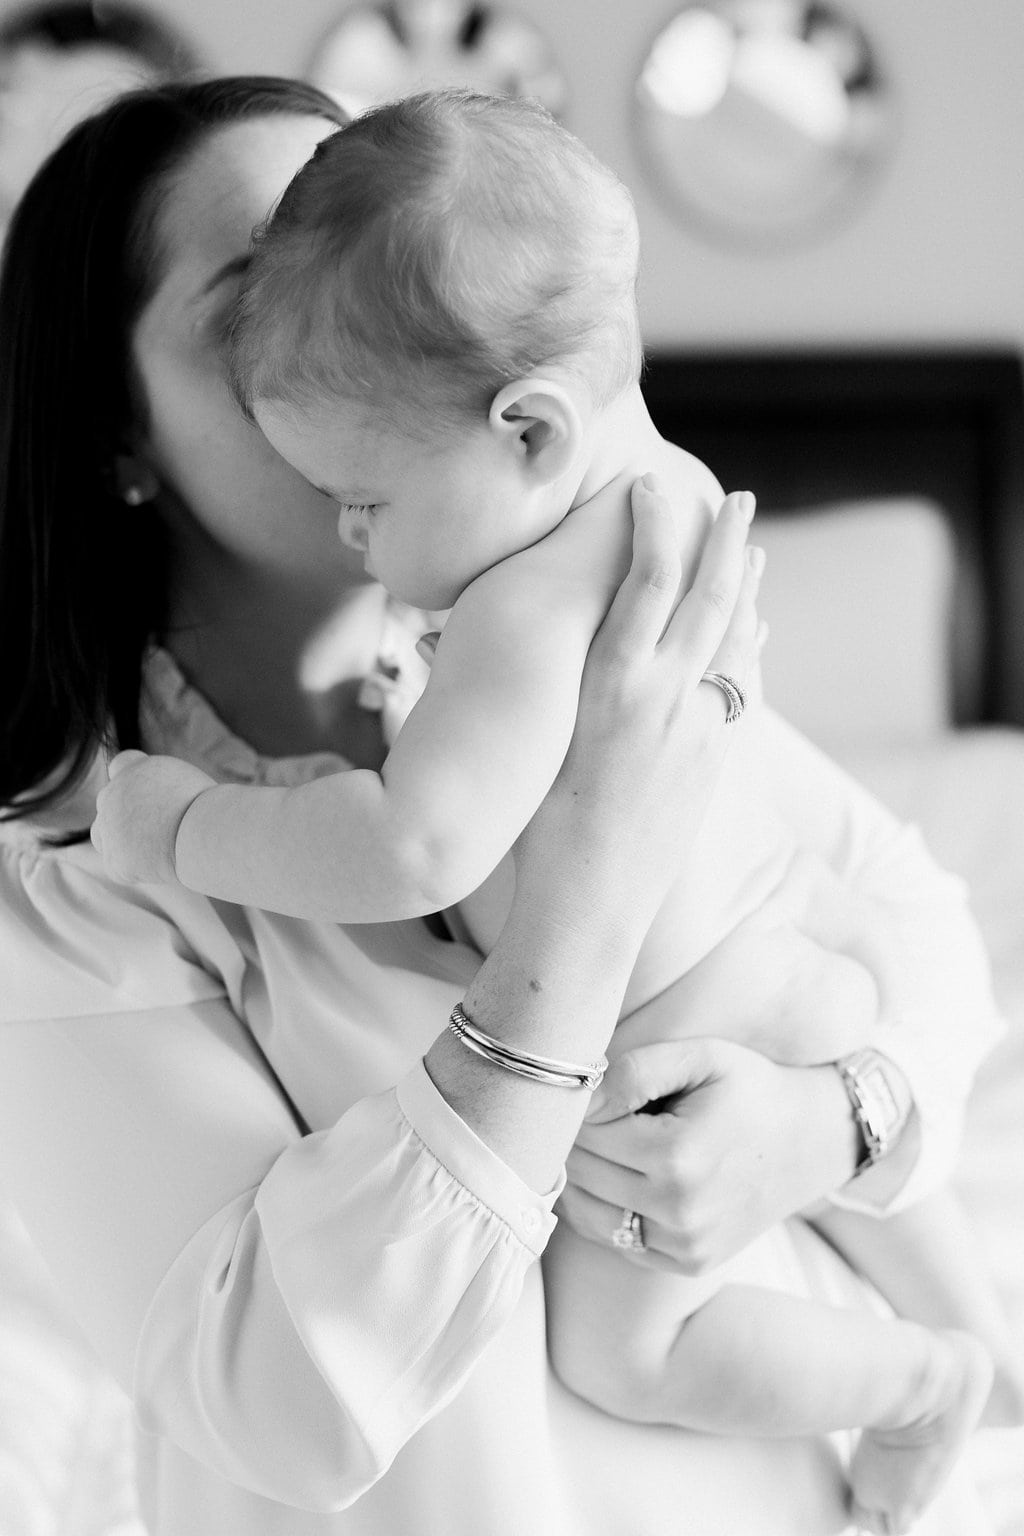 Mom kissing baby on the cheek in a black and white photograph during in-home lifestyle family photography session